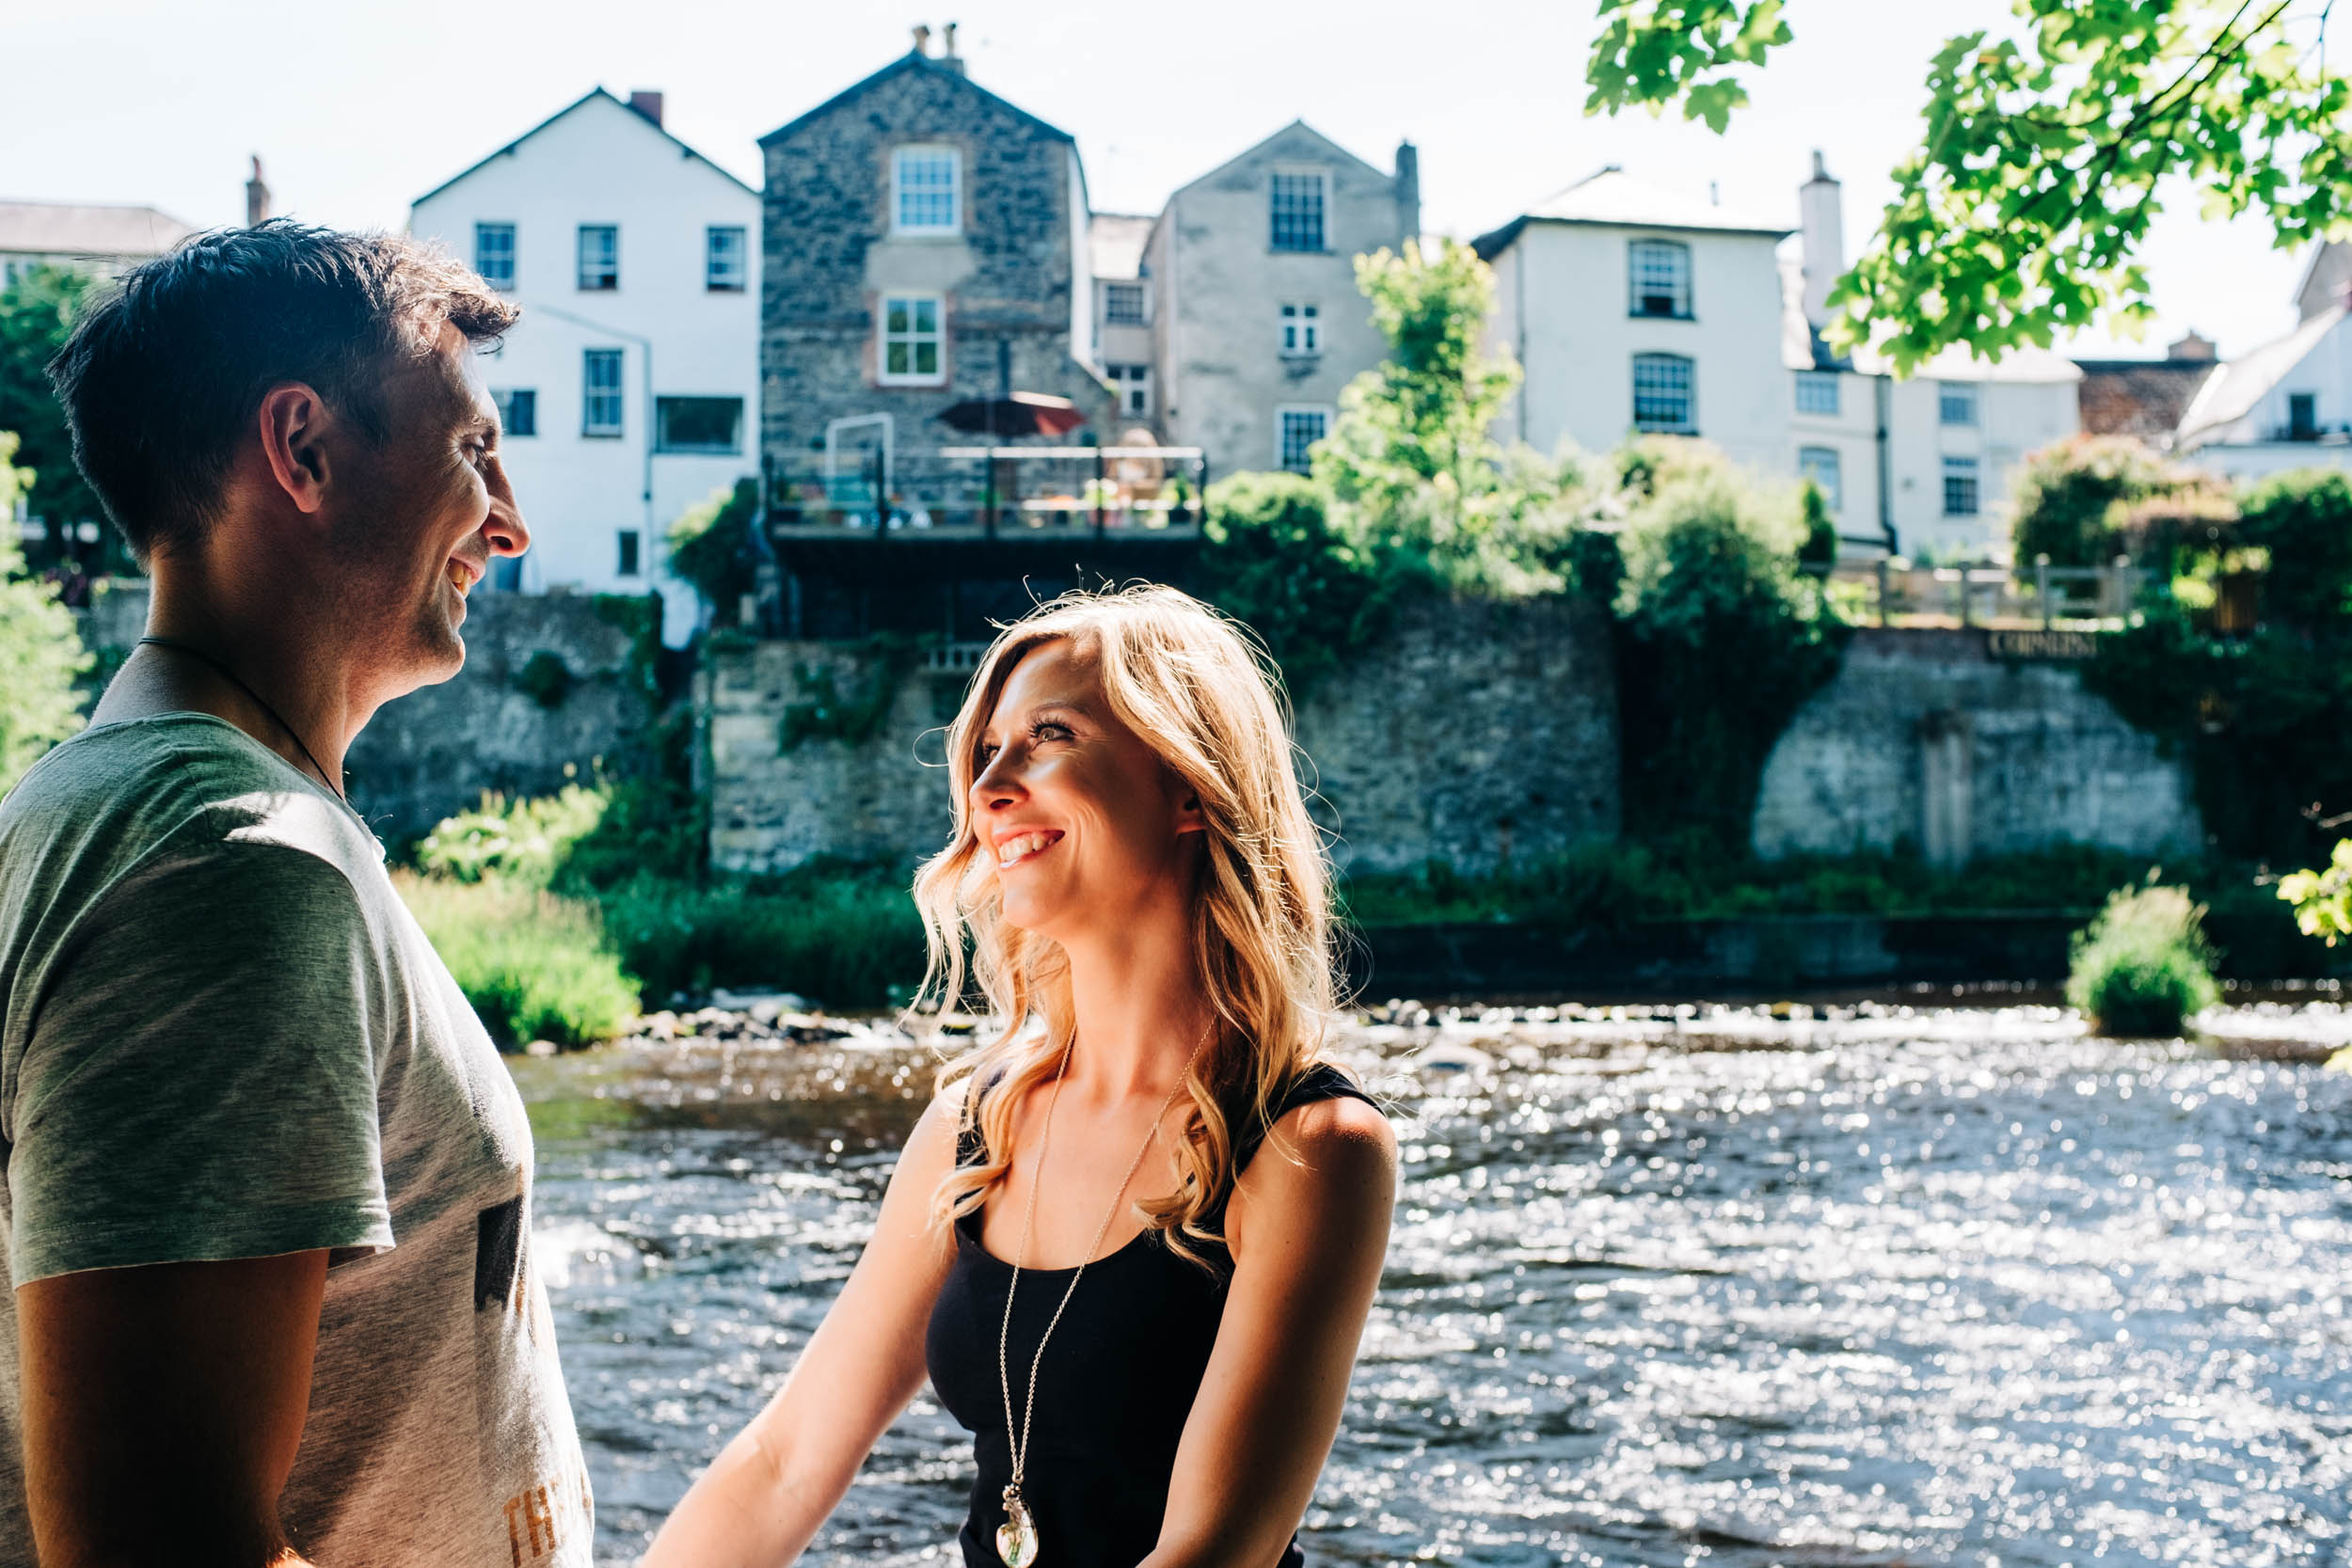 Alex_Sedgmond_Photography-SouthWalesWeddingPhotography-Wedding-Photographer-Cardiff-Llangollen-engagment-FionaAndVince-21.jpg